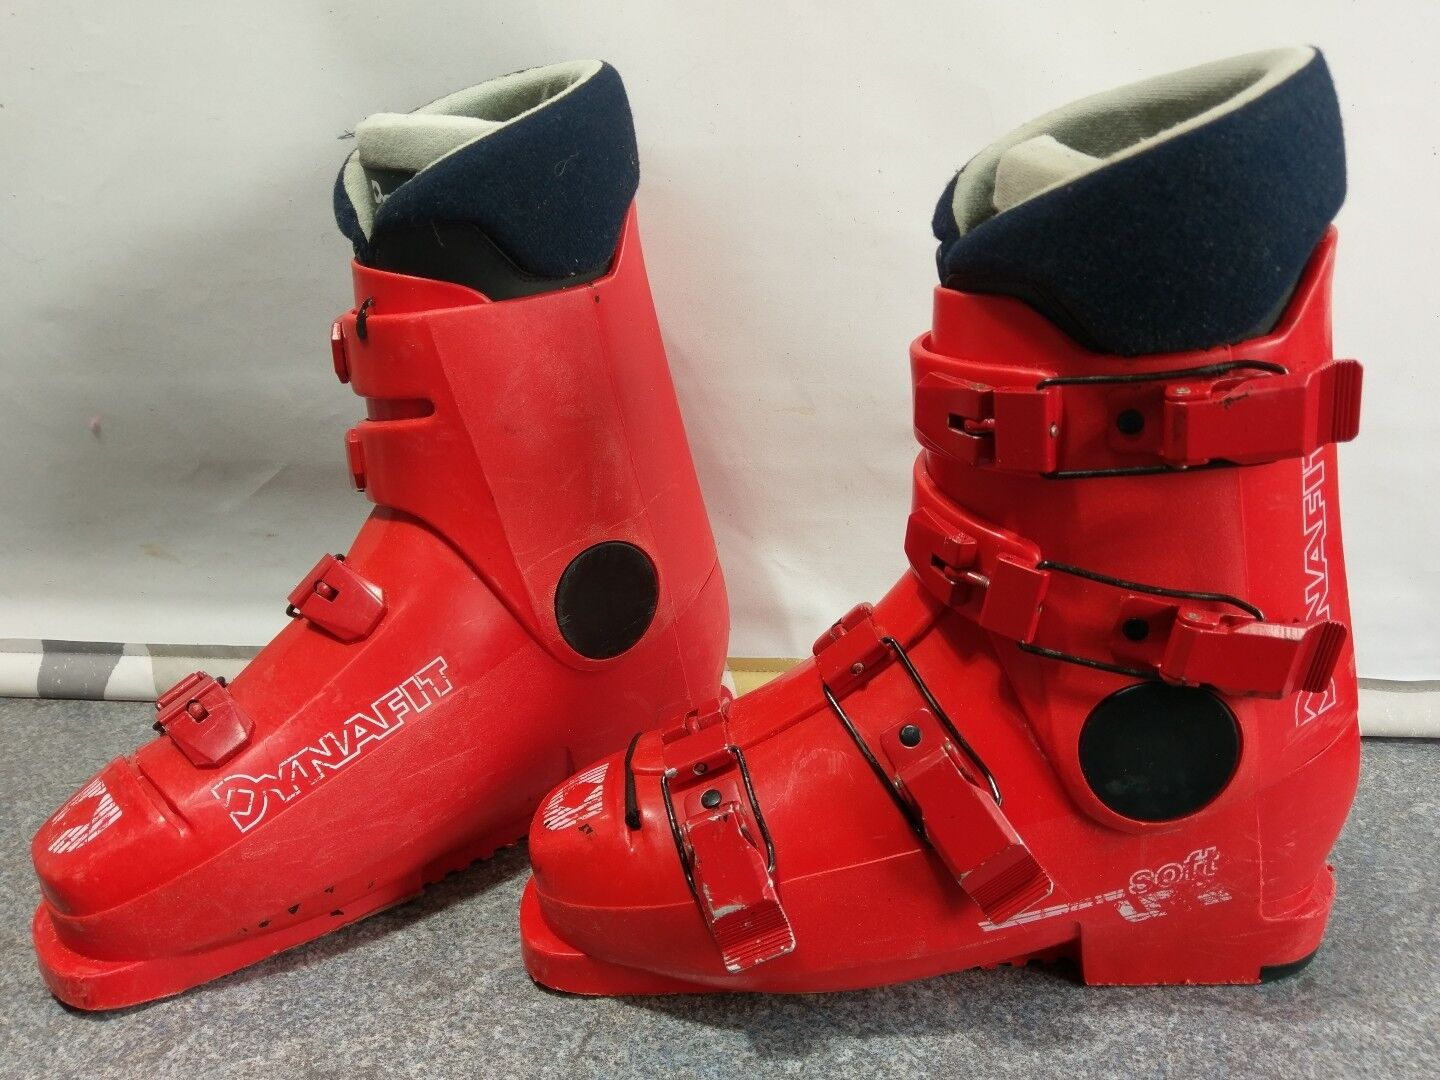 Mens Dynafit Soft Lite 2 Ski Mountaineering Boots Size US 9.5